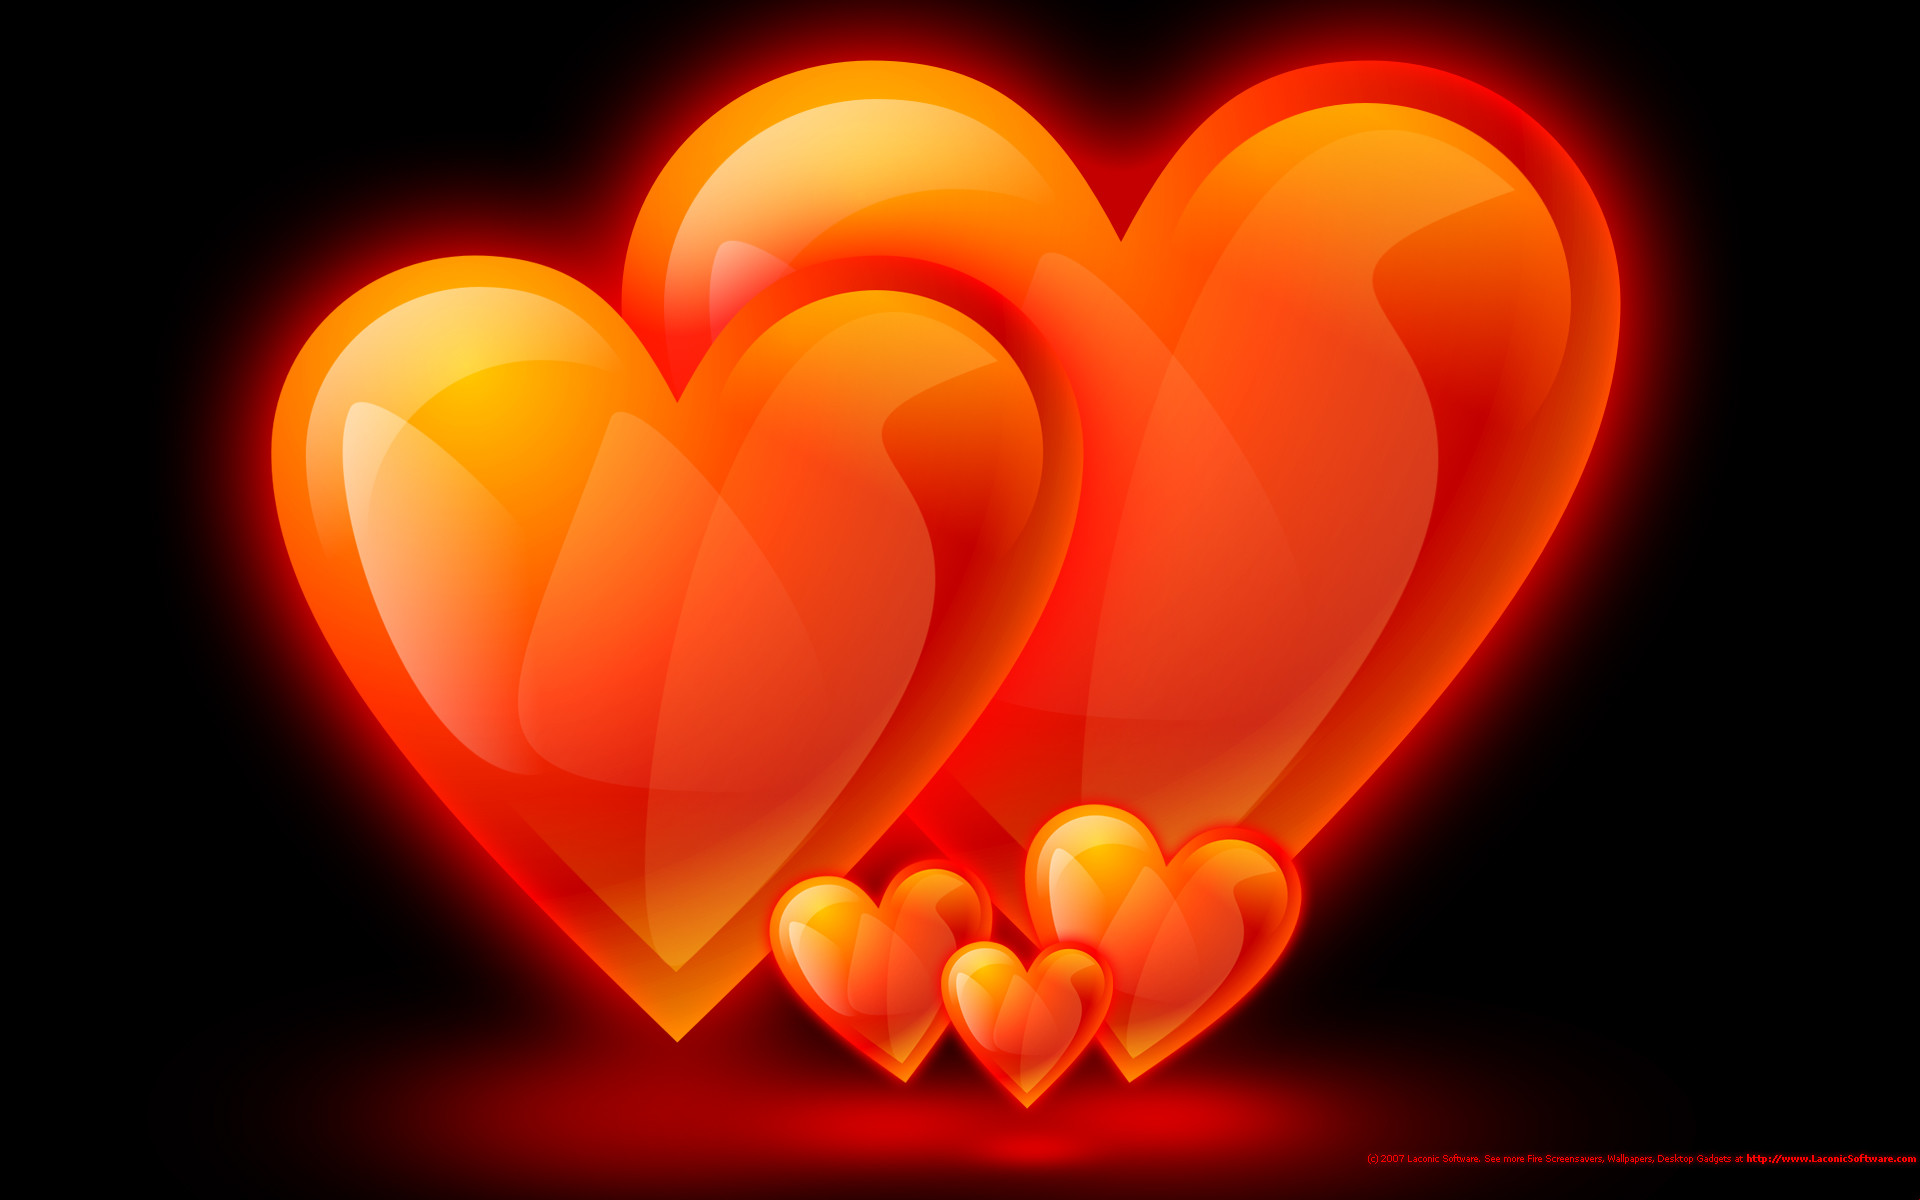 flame, wallpaper, hearts, family, wallpapers, screensavers, background .